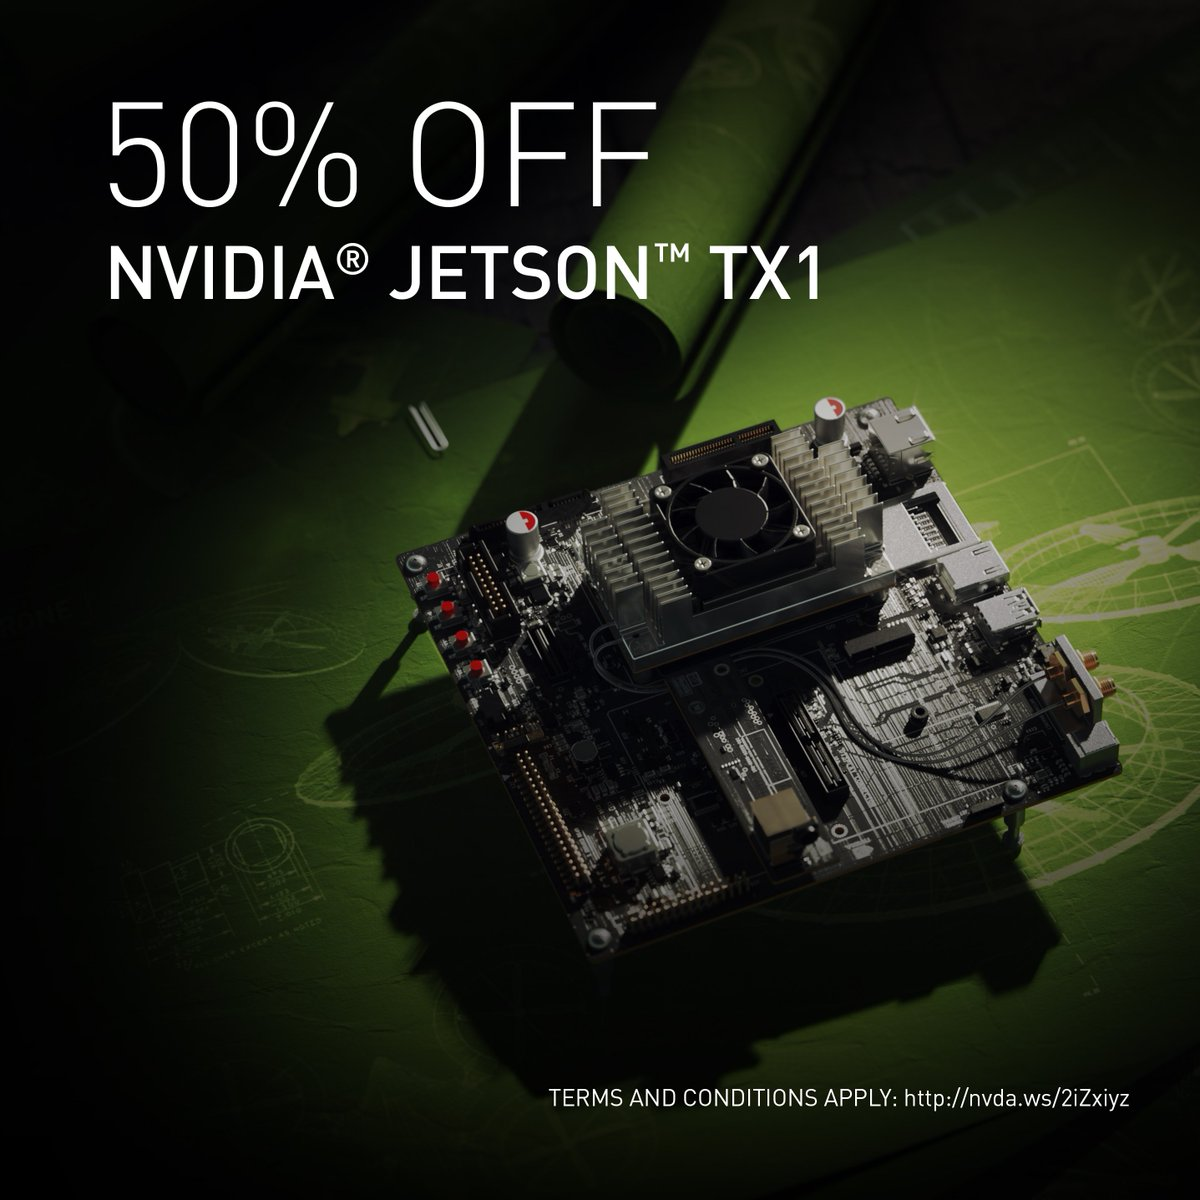 NVIDIA Embedded on Twitter: